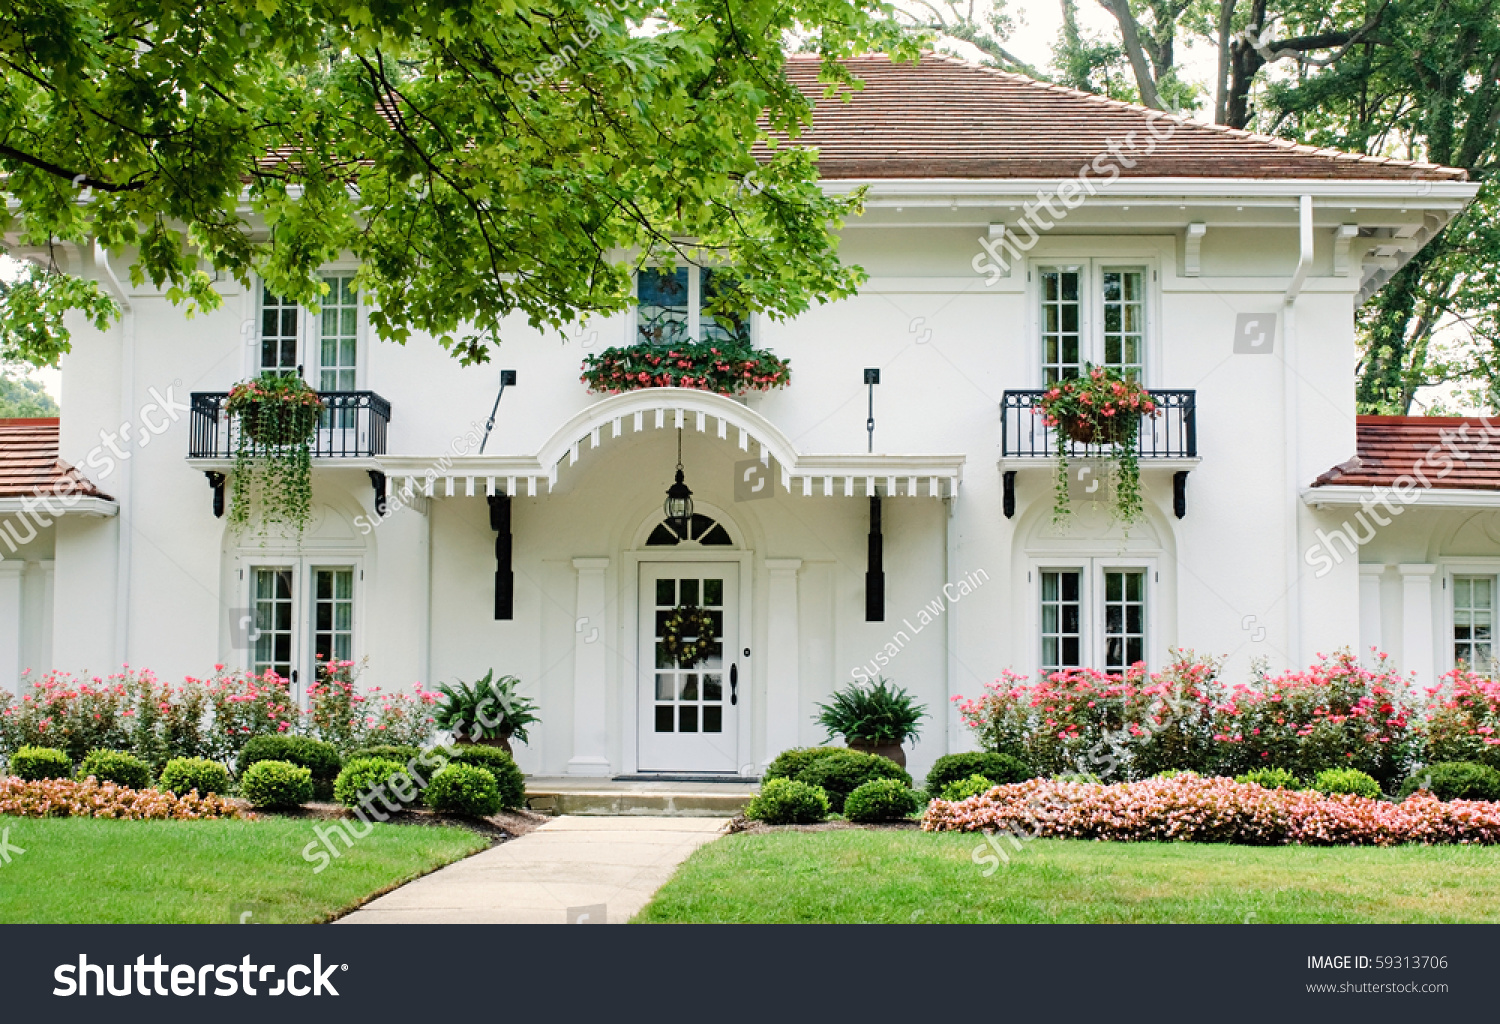 White House Pink Flowers Stock Photo Edit Now 59313706 Shutterstock